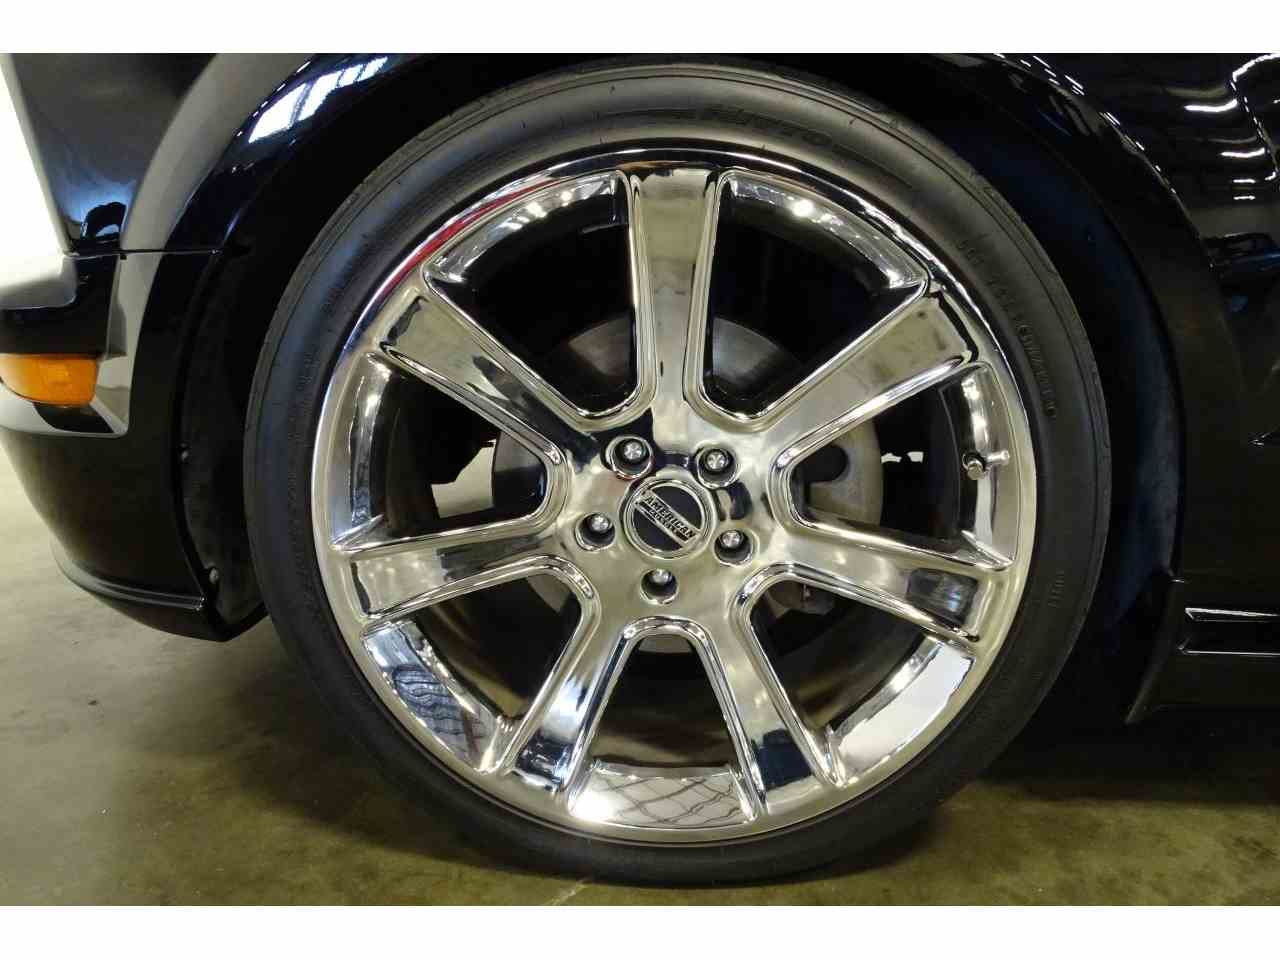 Large Picture of '06 Ford Mustang located in Tennessee Offered by Gateway Classic Cars - Nashville - MFDI